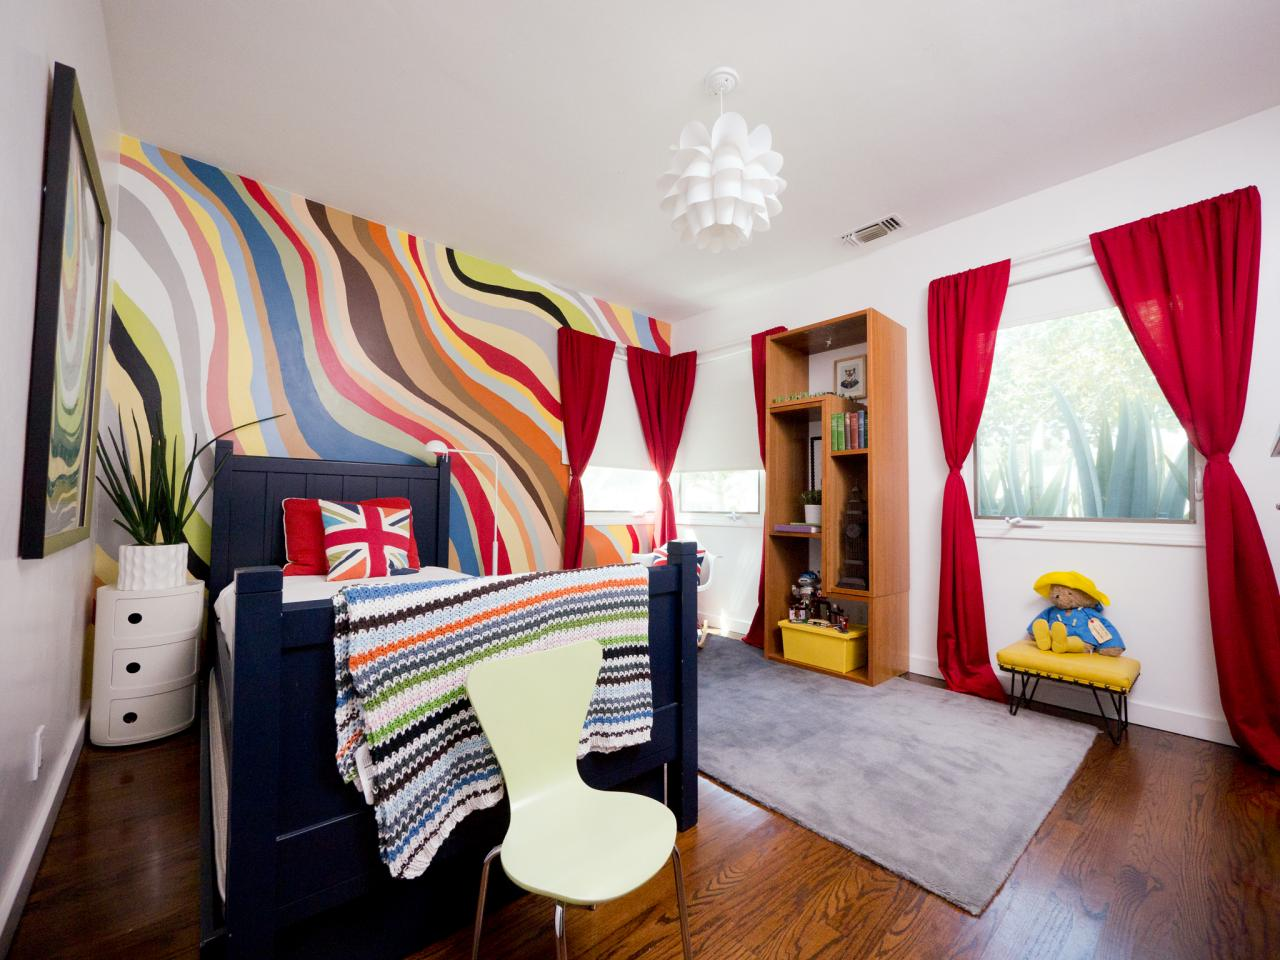 Rainbow color is one option to decor 12 years old bedroom